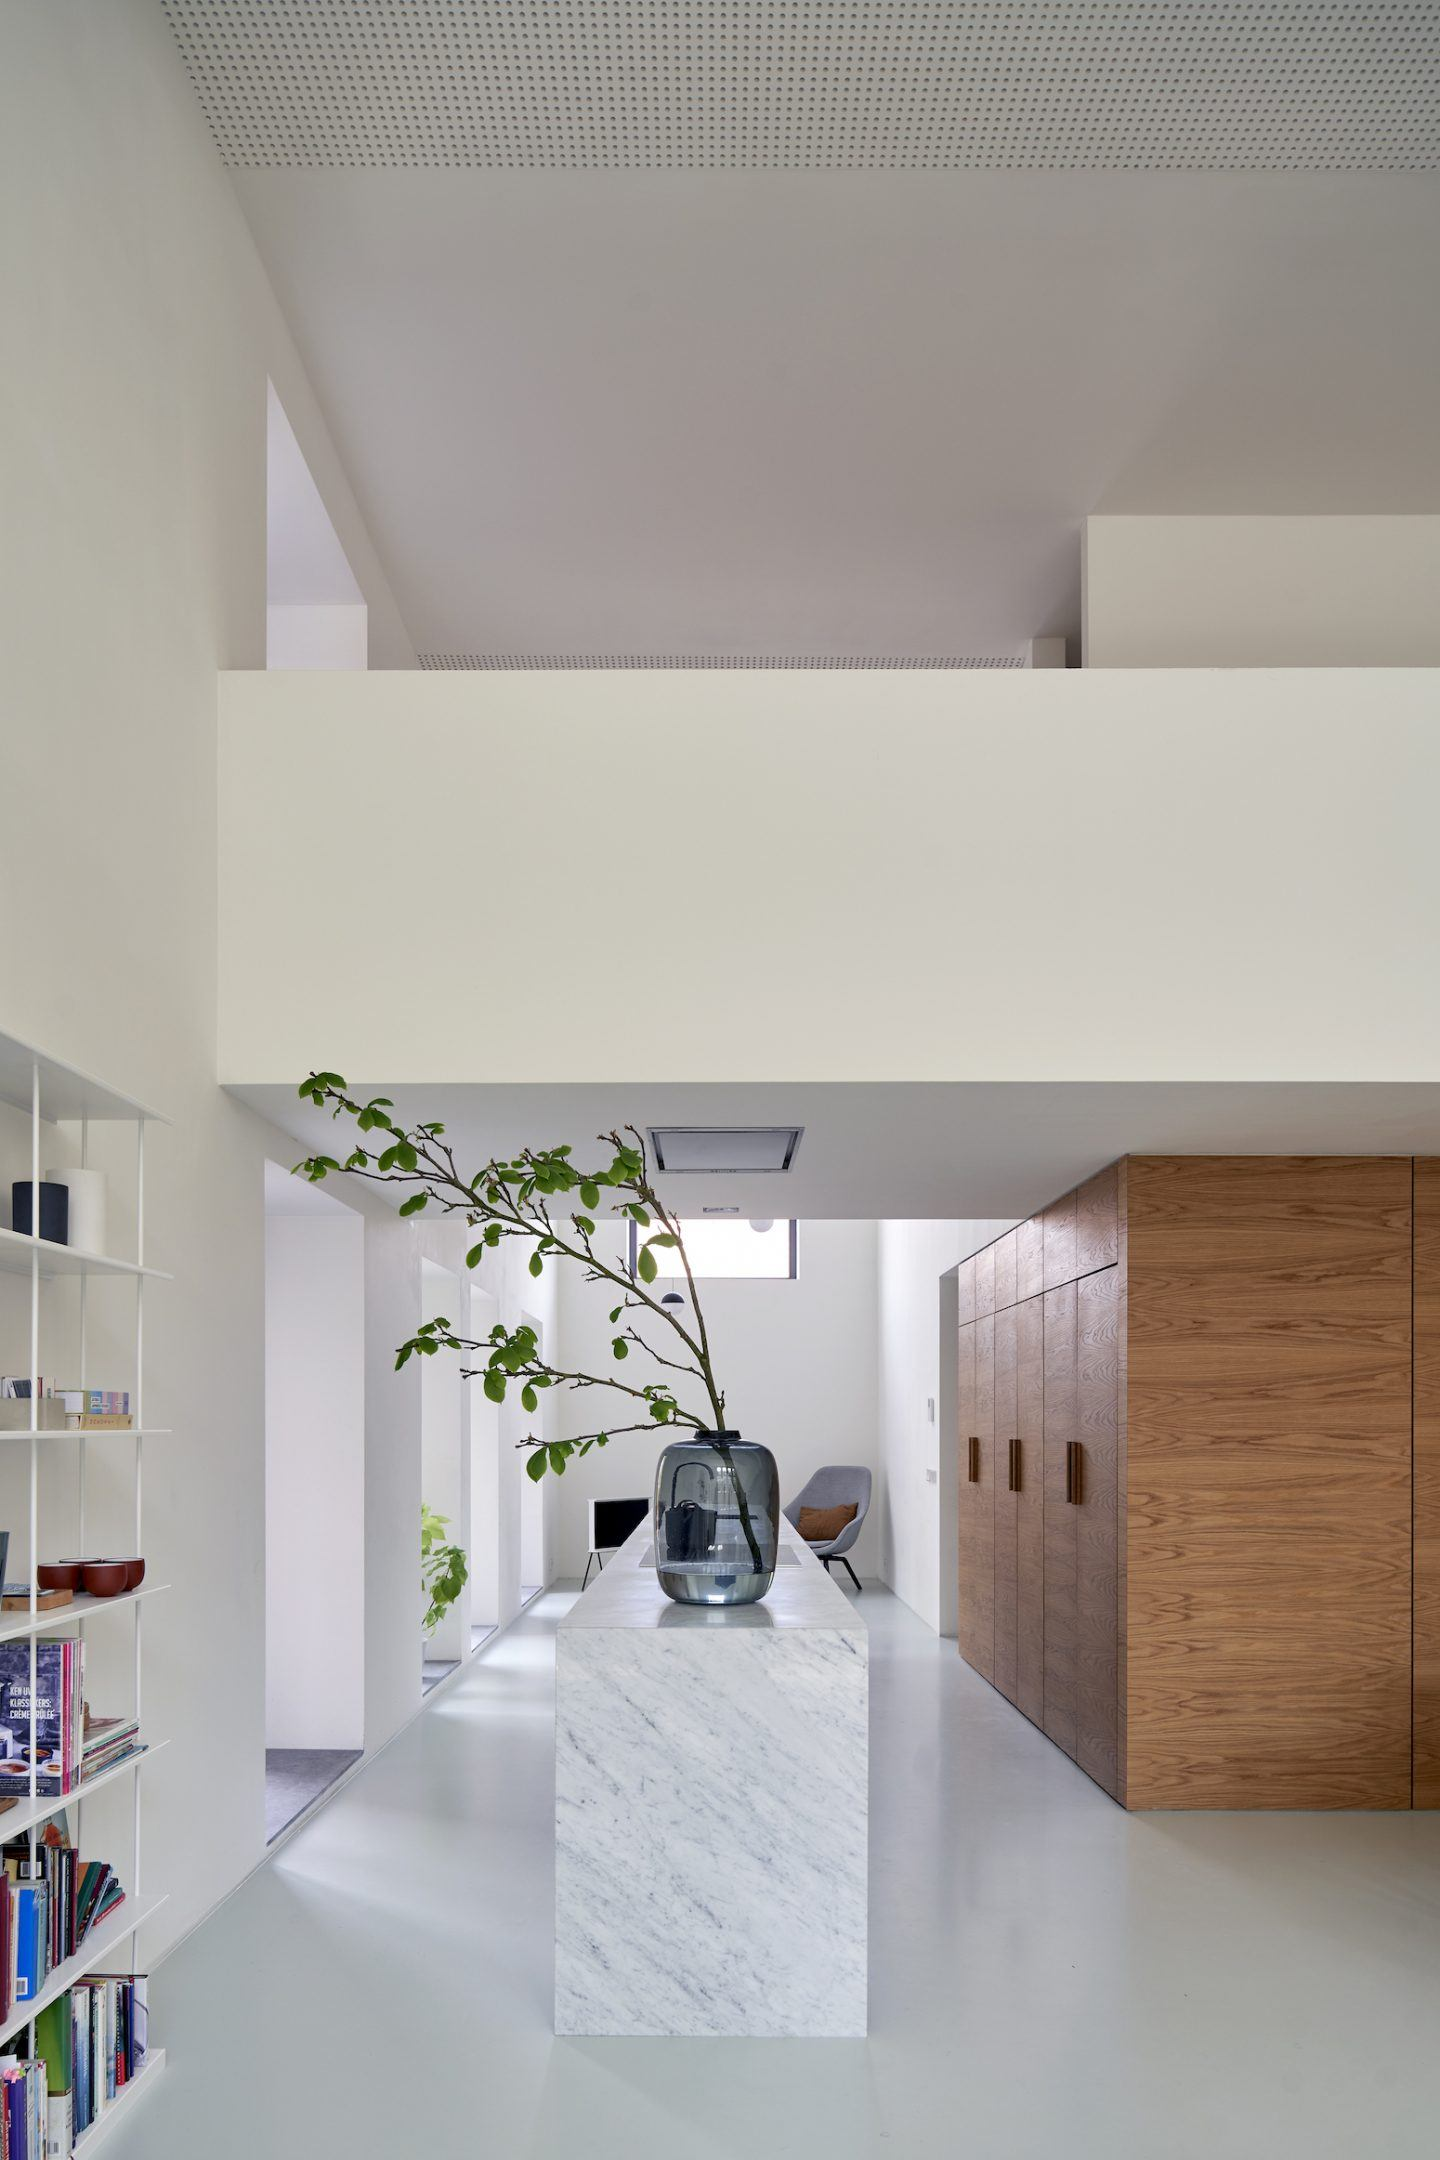 IGNANT-Architecture-Eklund-Terbeek-The-Gym-Loft-4